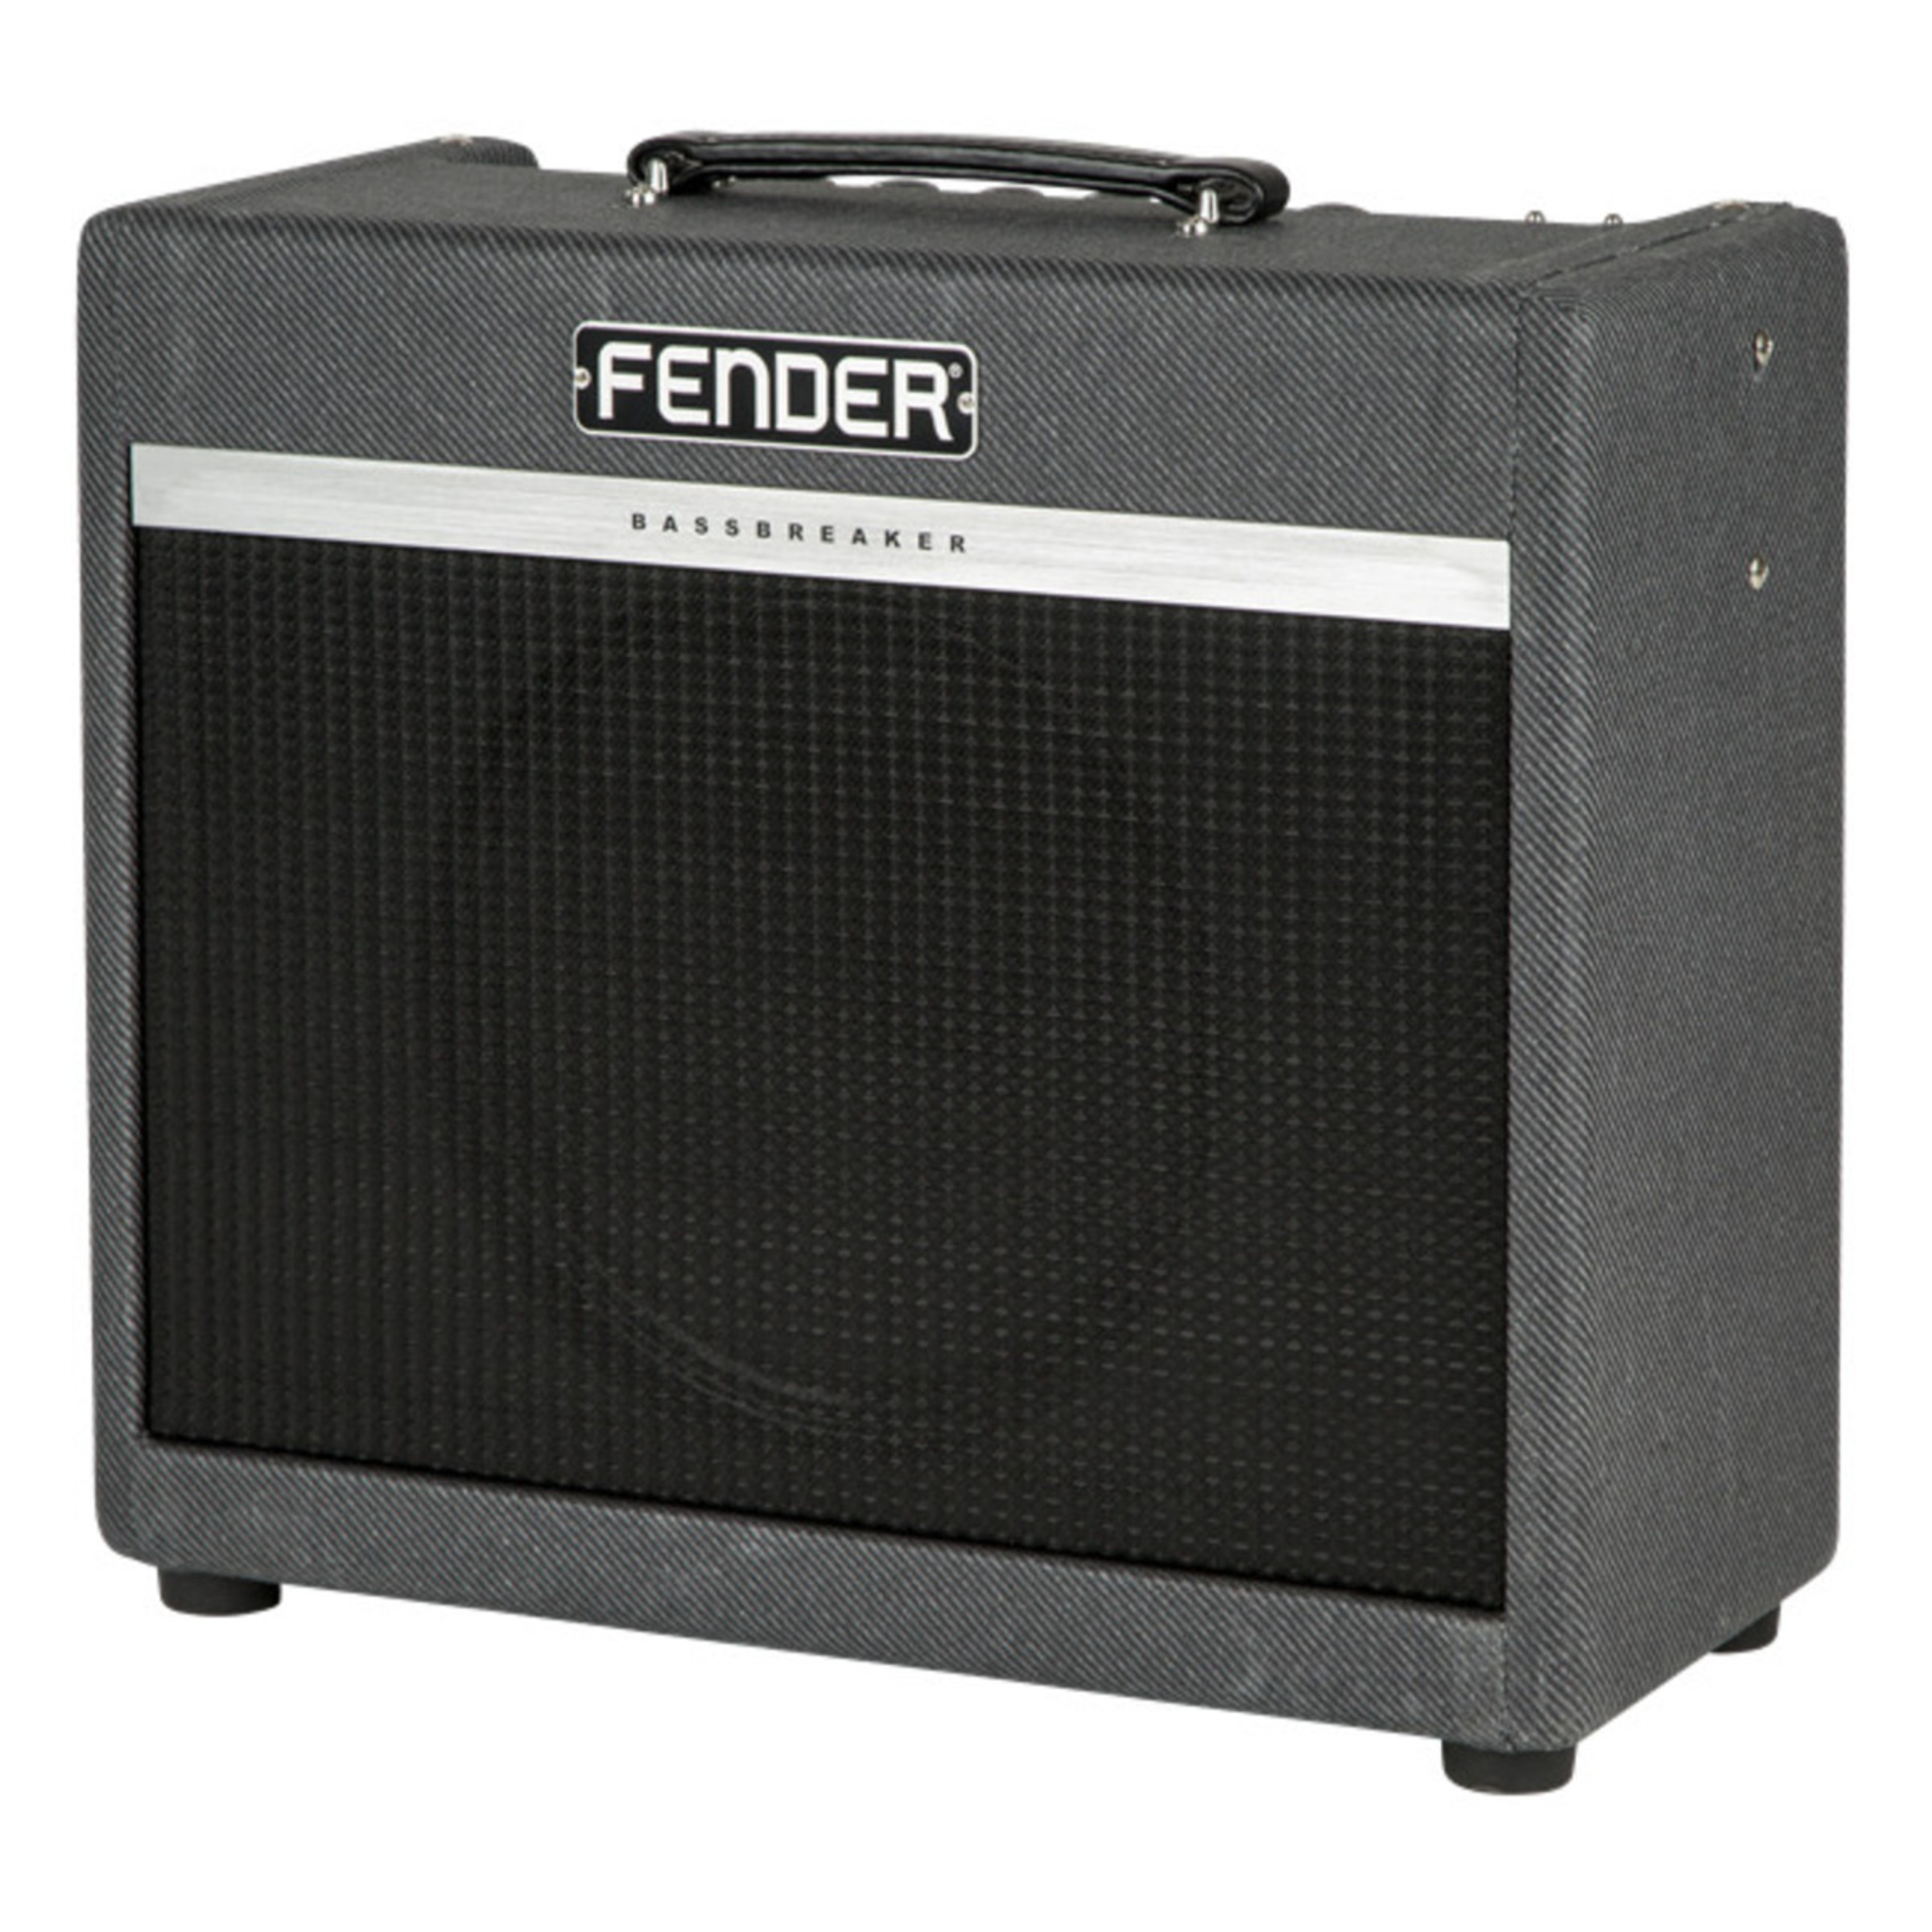 fender bassbreaker 15 valve combo giggear. Black Bedroom Furniture Sets. Home Design Ideas